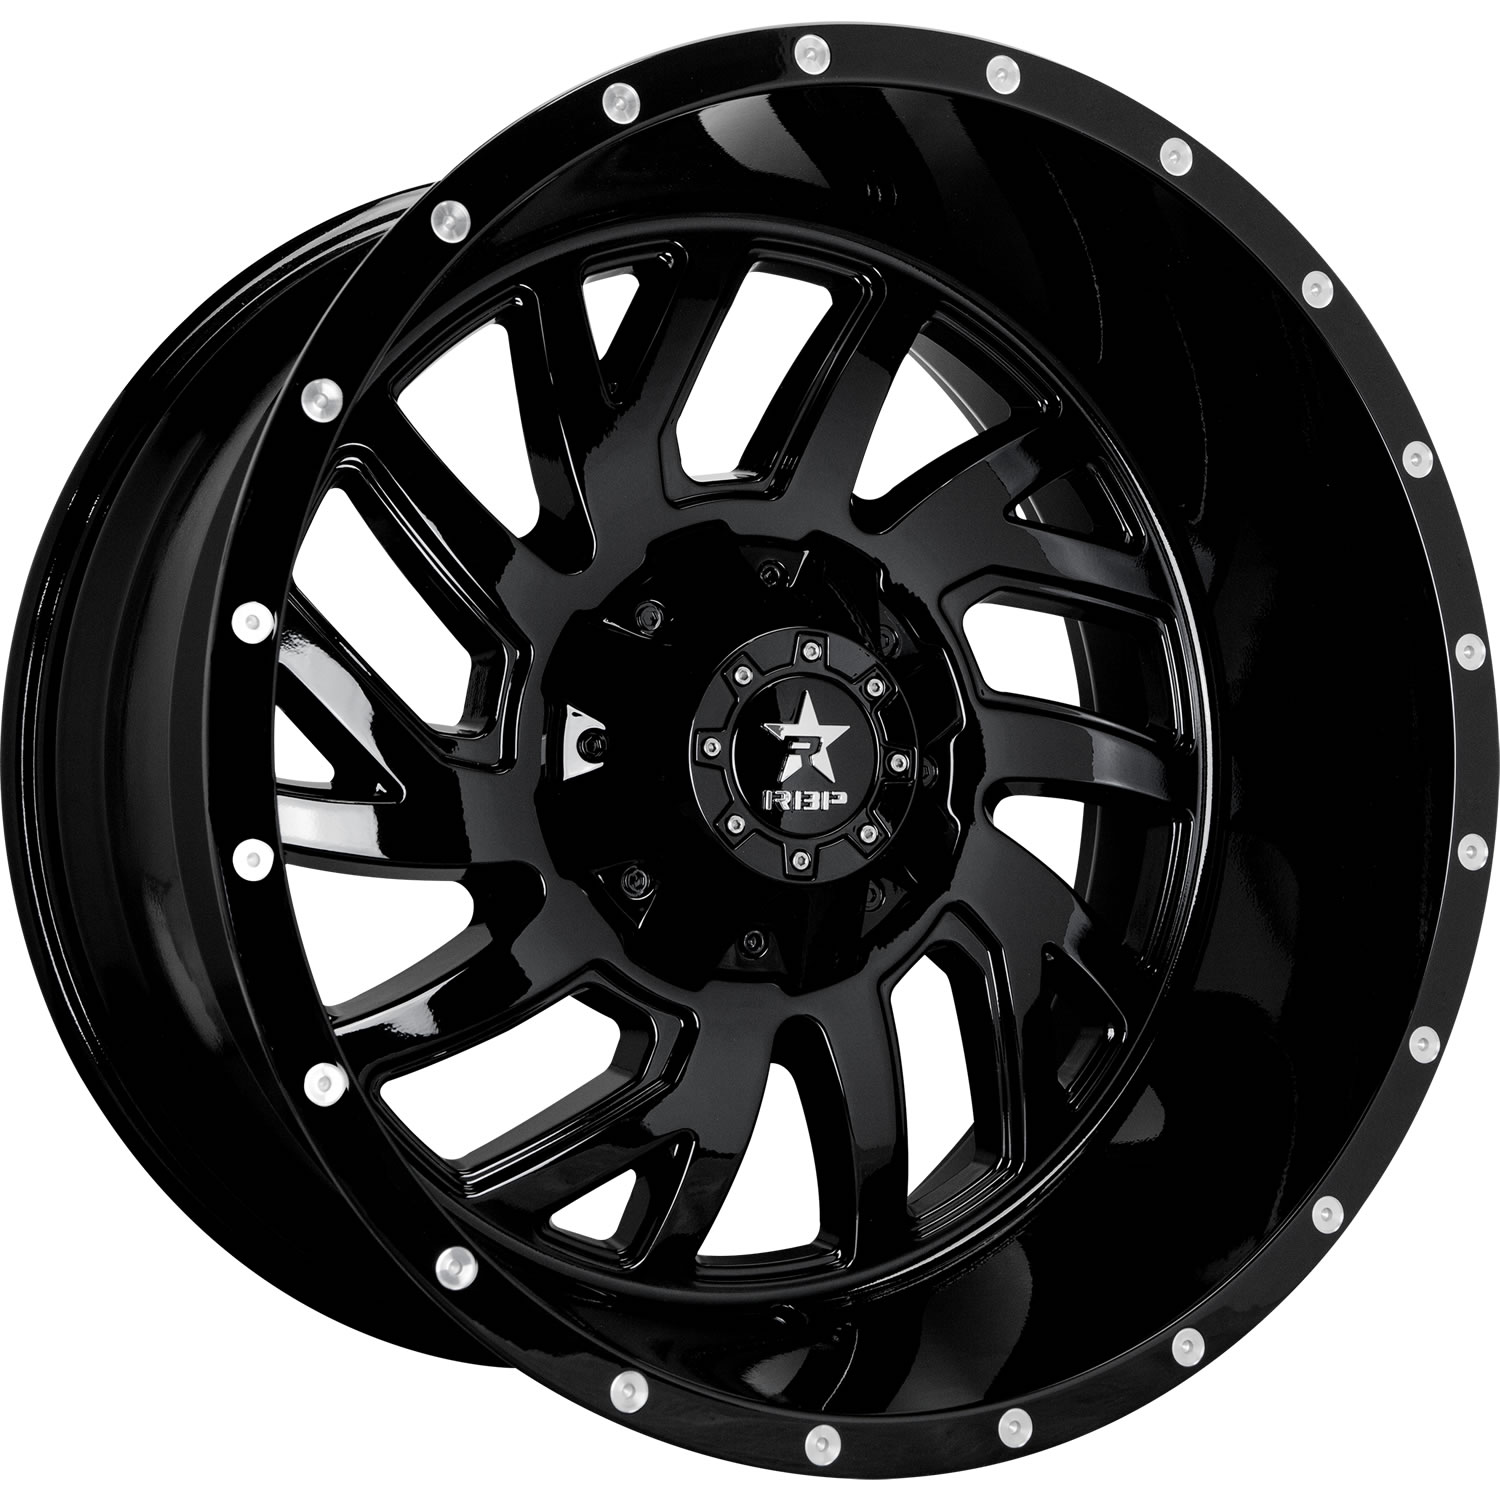 RBP 65R 20x10  12mm | 65R 2010 39 12FB